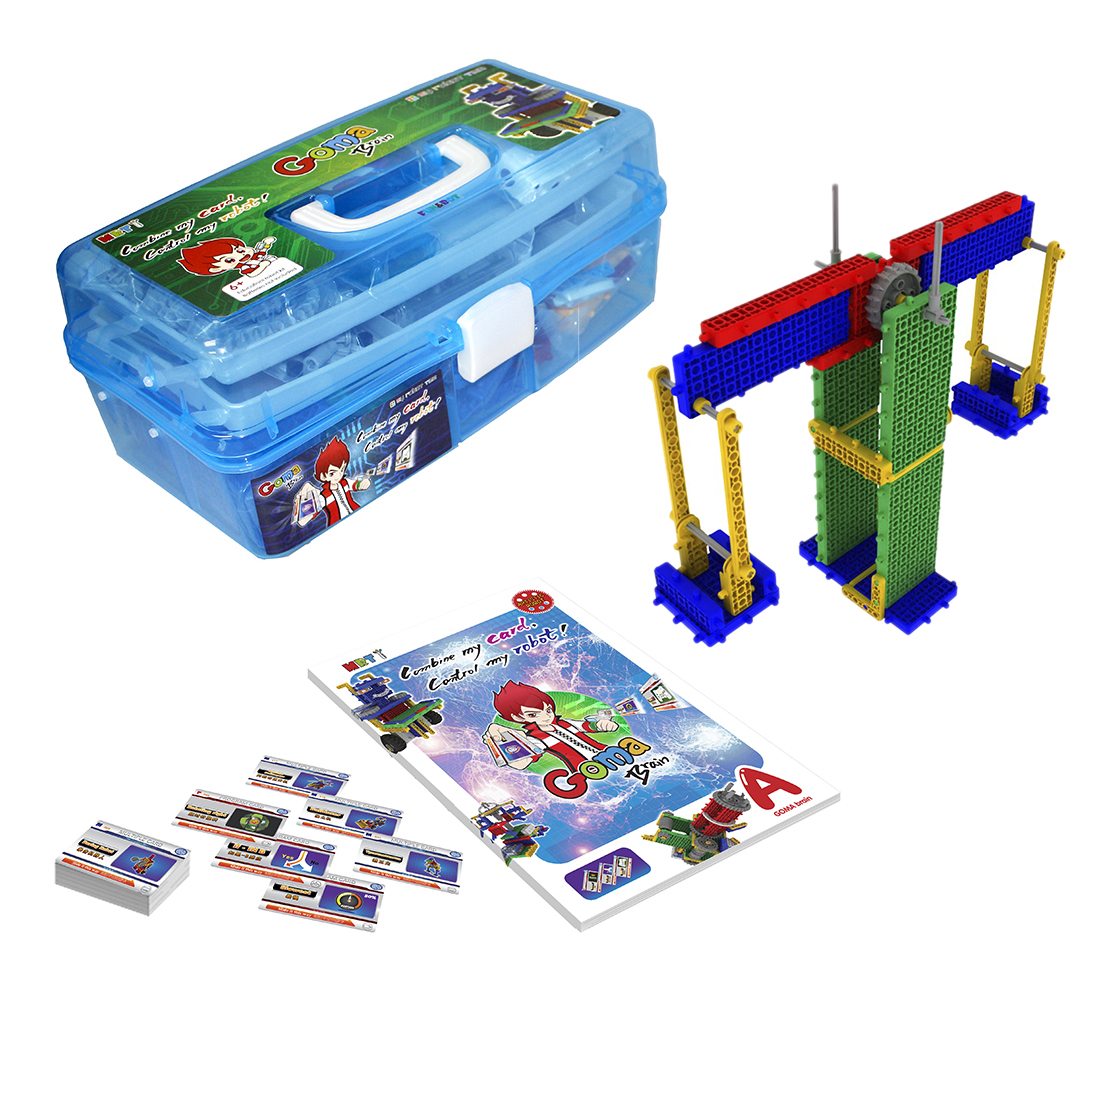 My Robot Time MRT 1-Brain A Colorful Robots Bulding Block Kit Assembly Educational Robot Toy For Beginner 6-8 Years Old